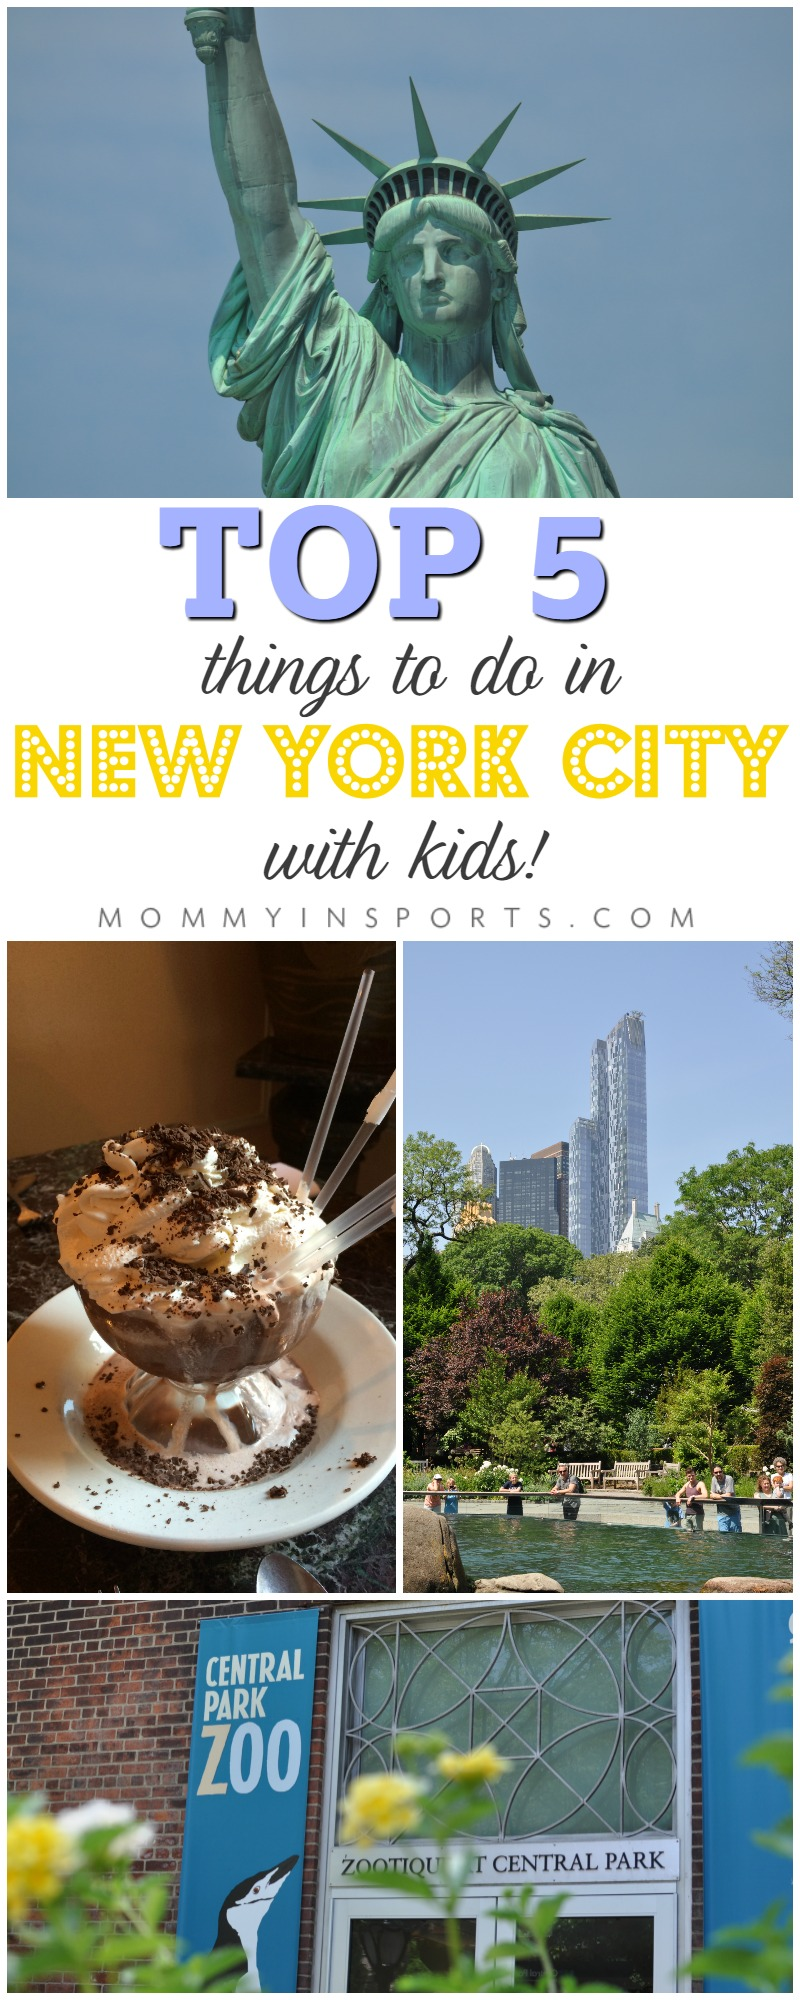 top 5 things to do in new york city with kids kristen hewitt